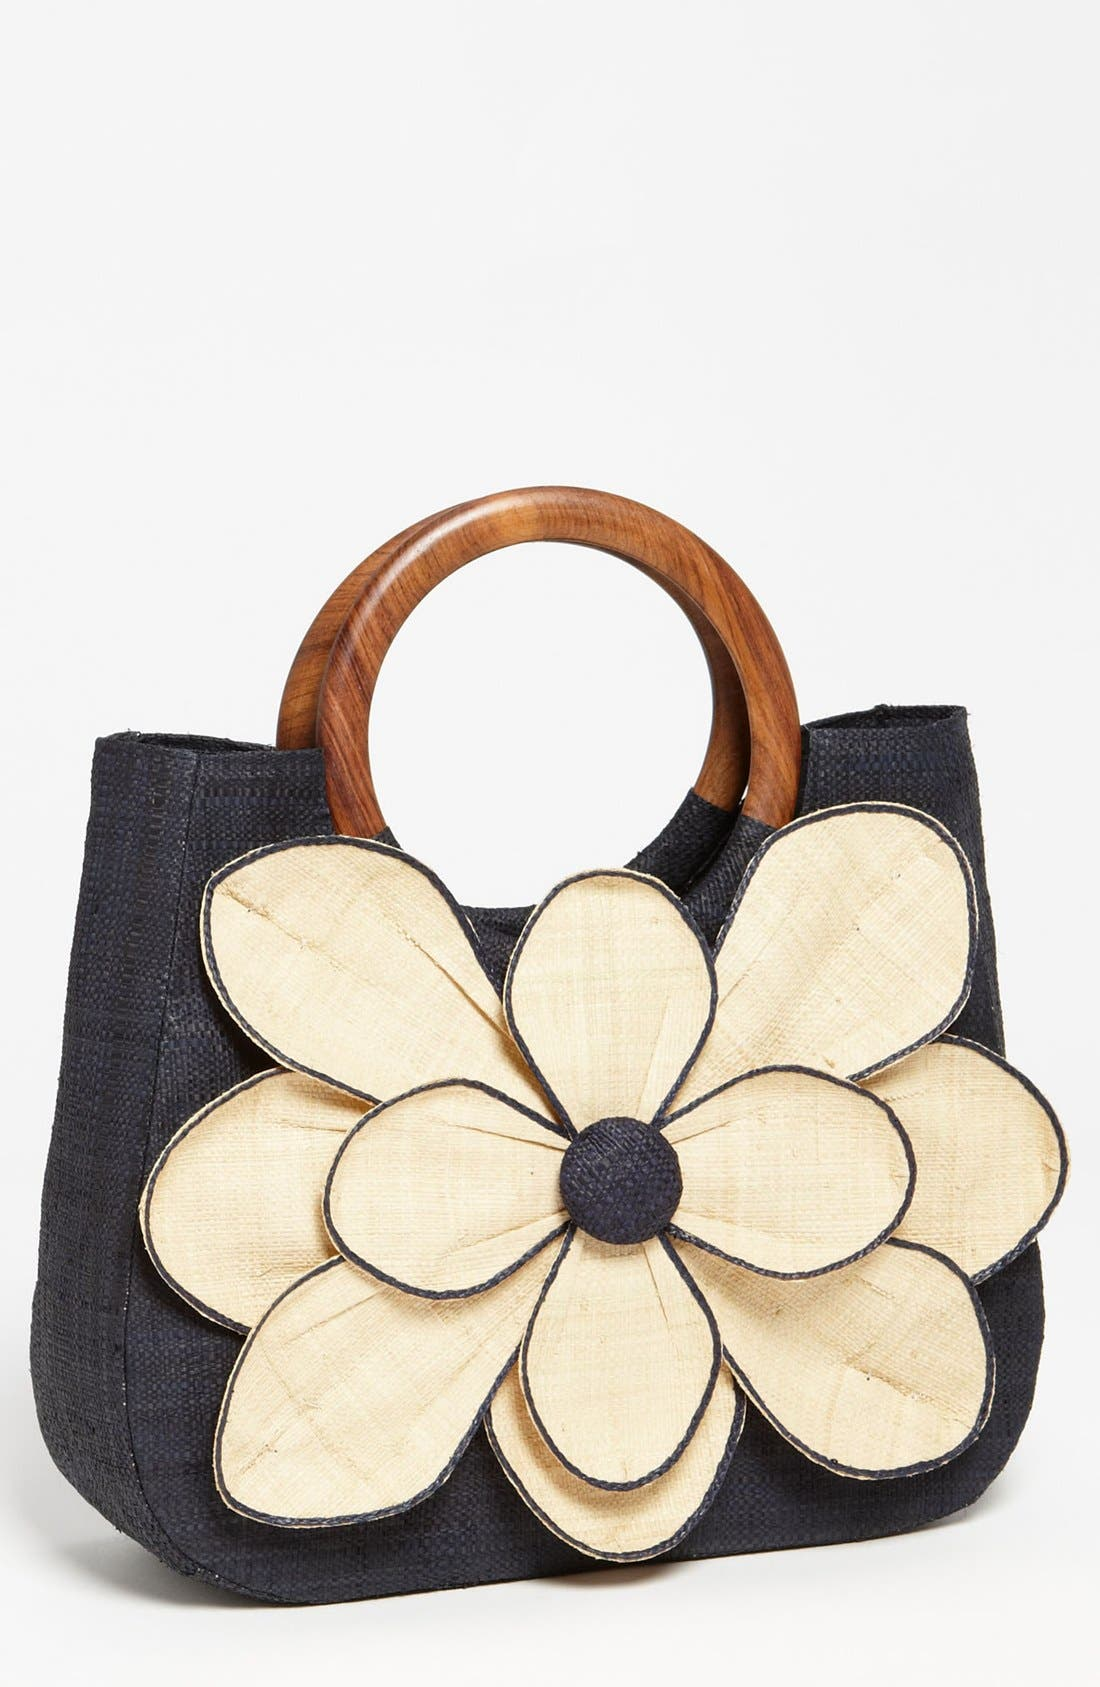 Alternate Image 1 Selected - Mar y Sol 'Guadalupe' Straw Shopper